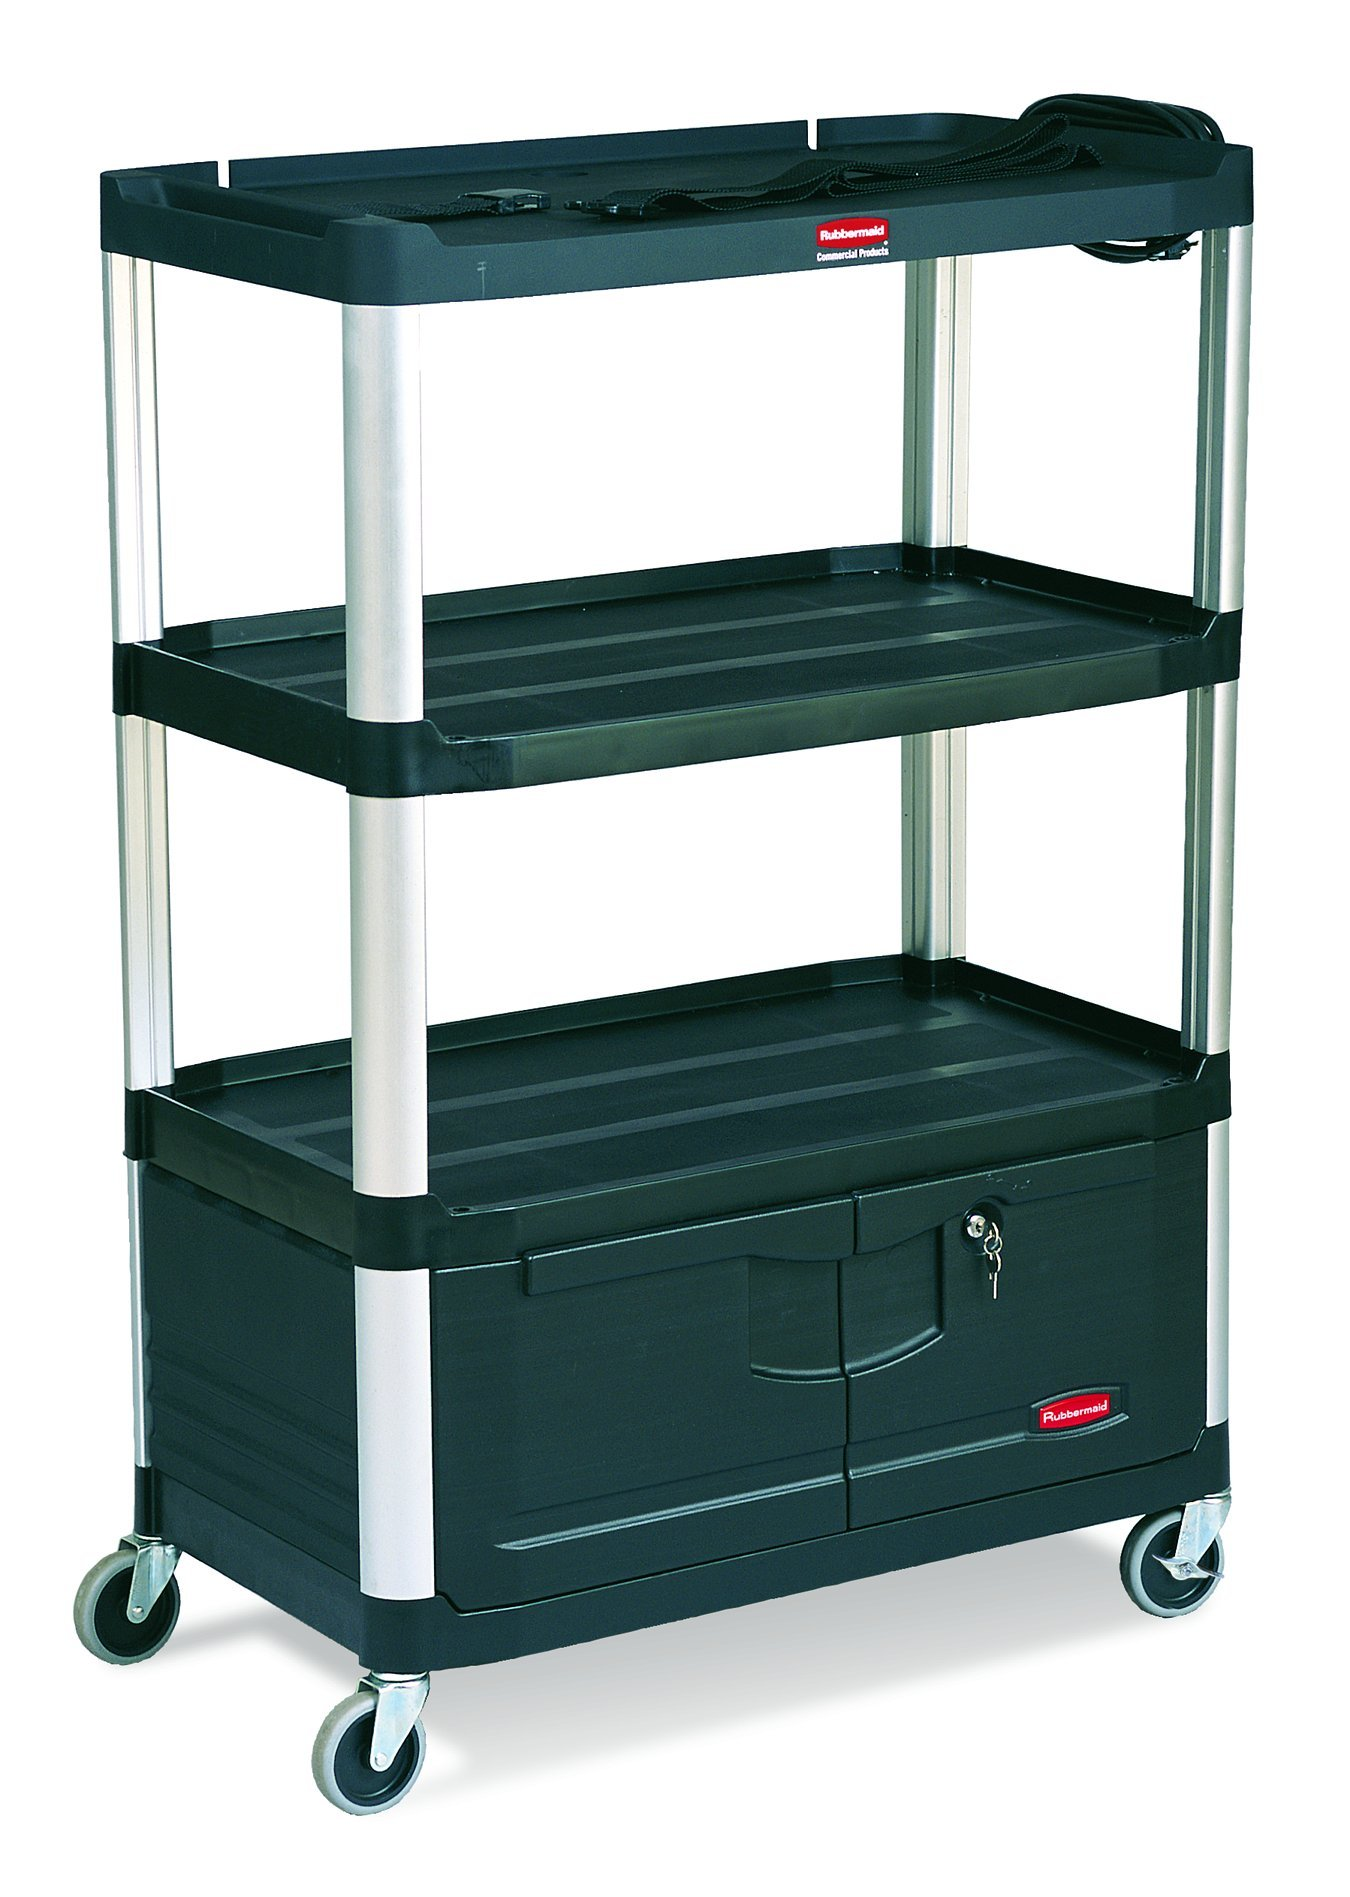 Rubbermaid Commercial FG9T3500BLA Audio-Visual Aluminum Service Cart, 4 Shelves With Cabinet, 4-inch Diameter Casters, Black by Rubbermaid Commercial Products